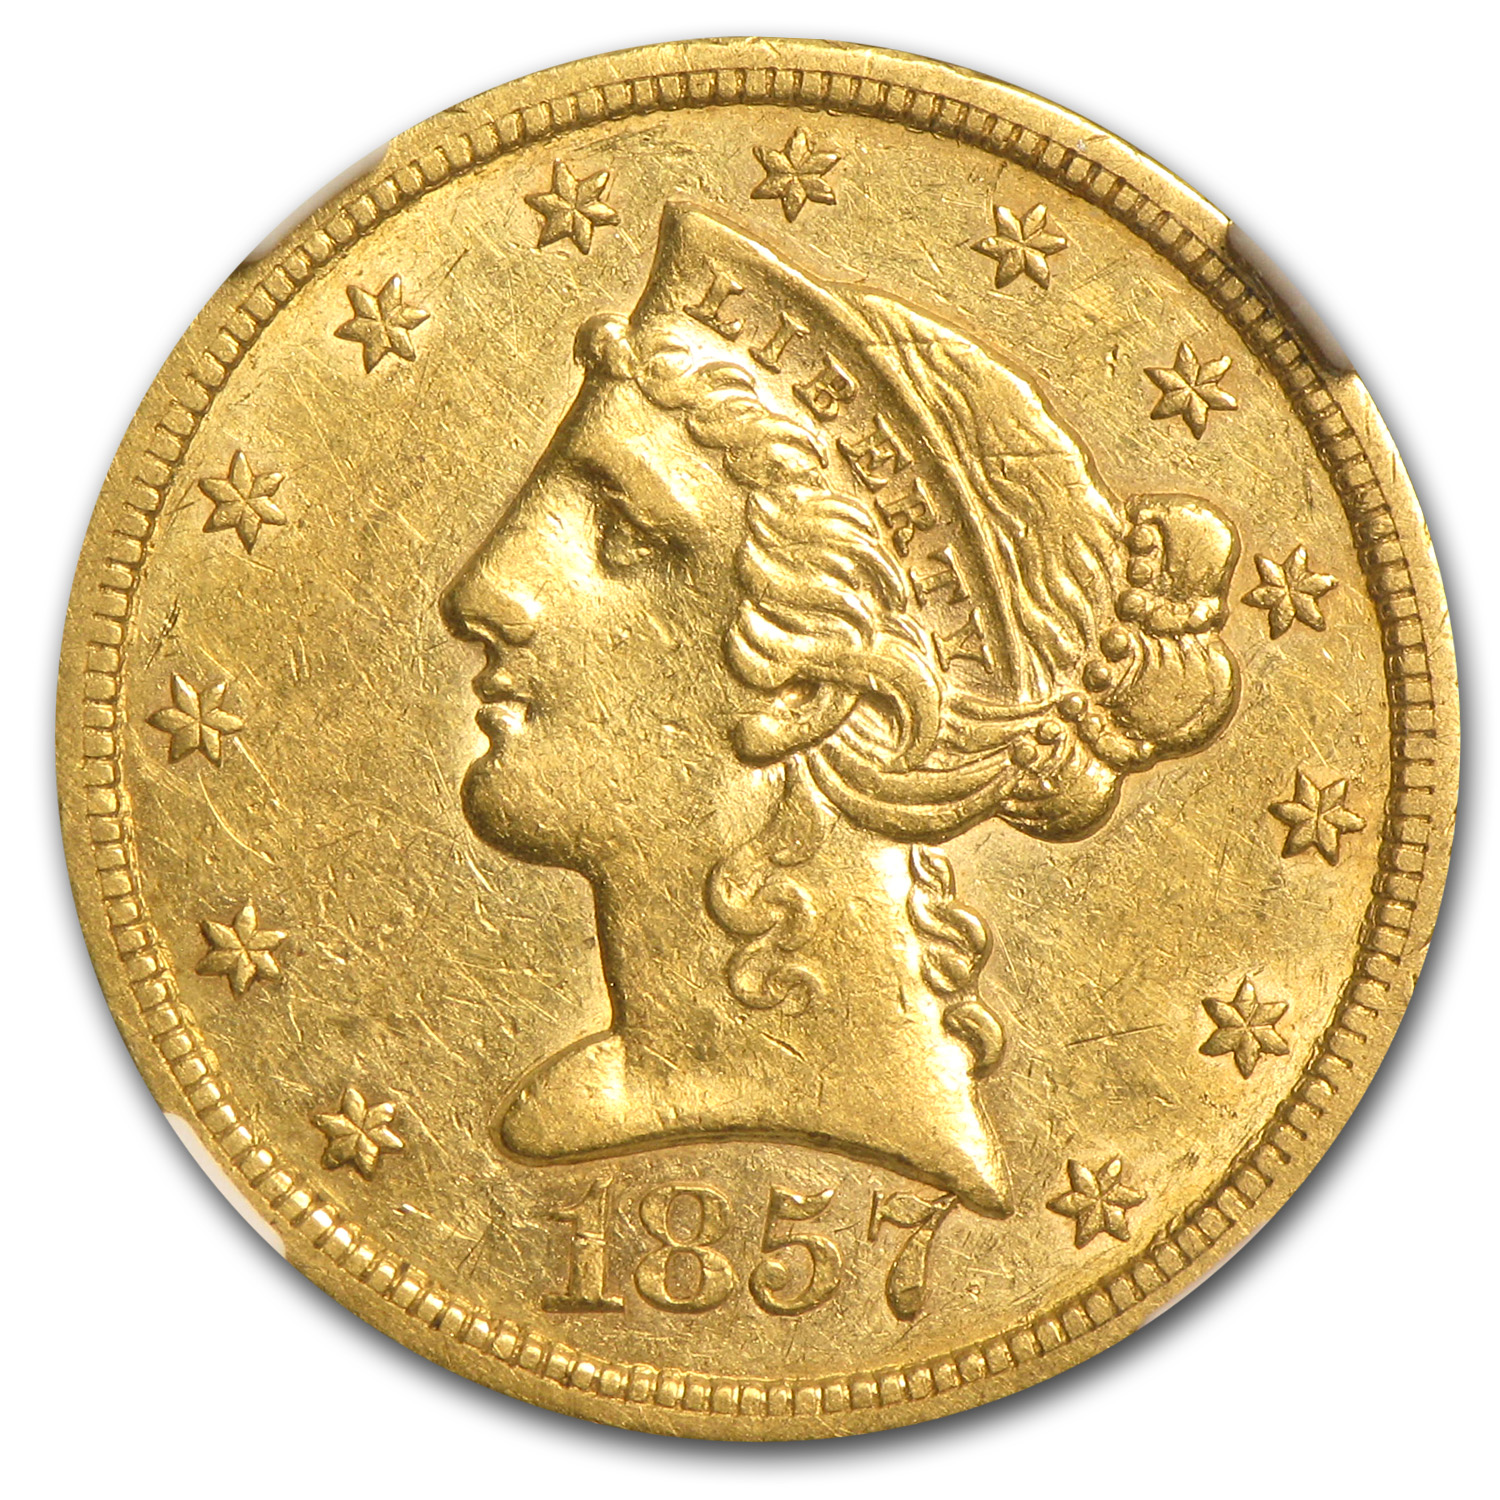 1857-S $5 Liberty Gold Half Eagle - AU Details (Reverse Graffiti)